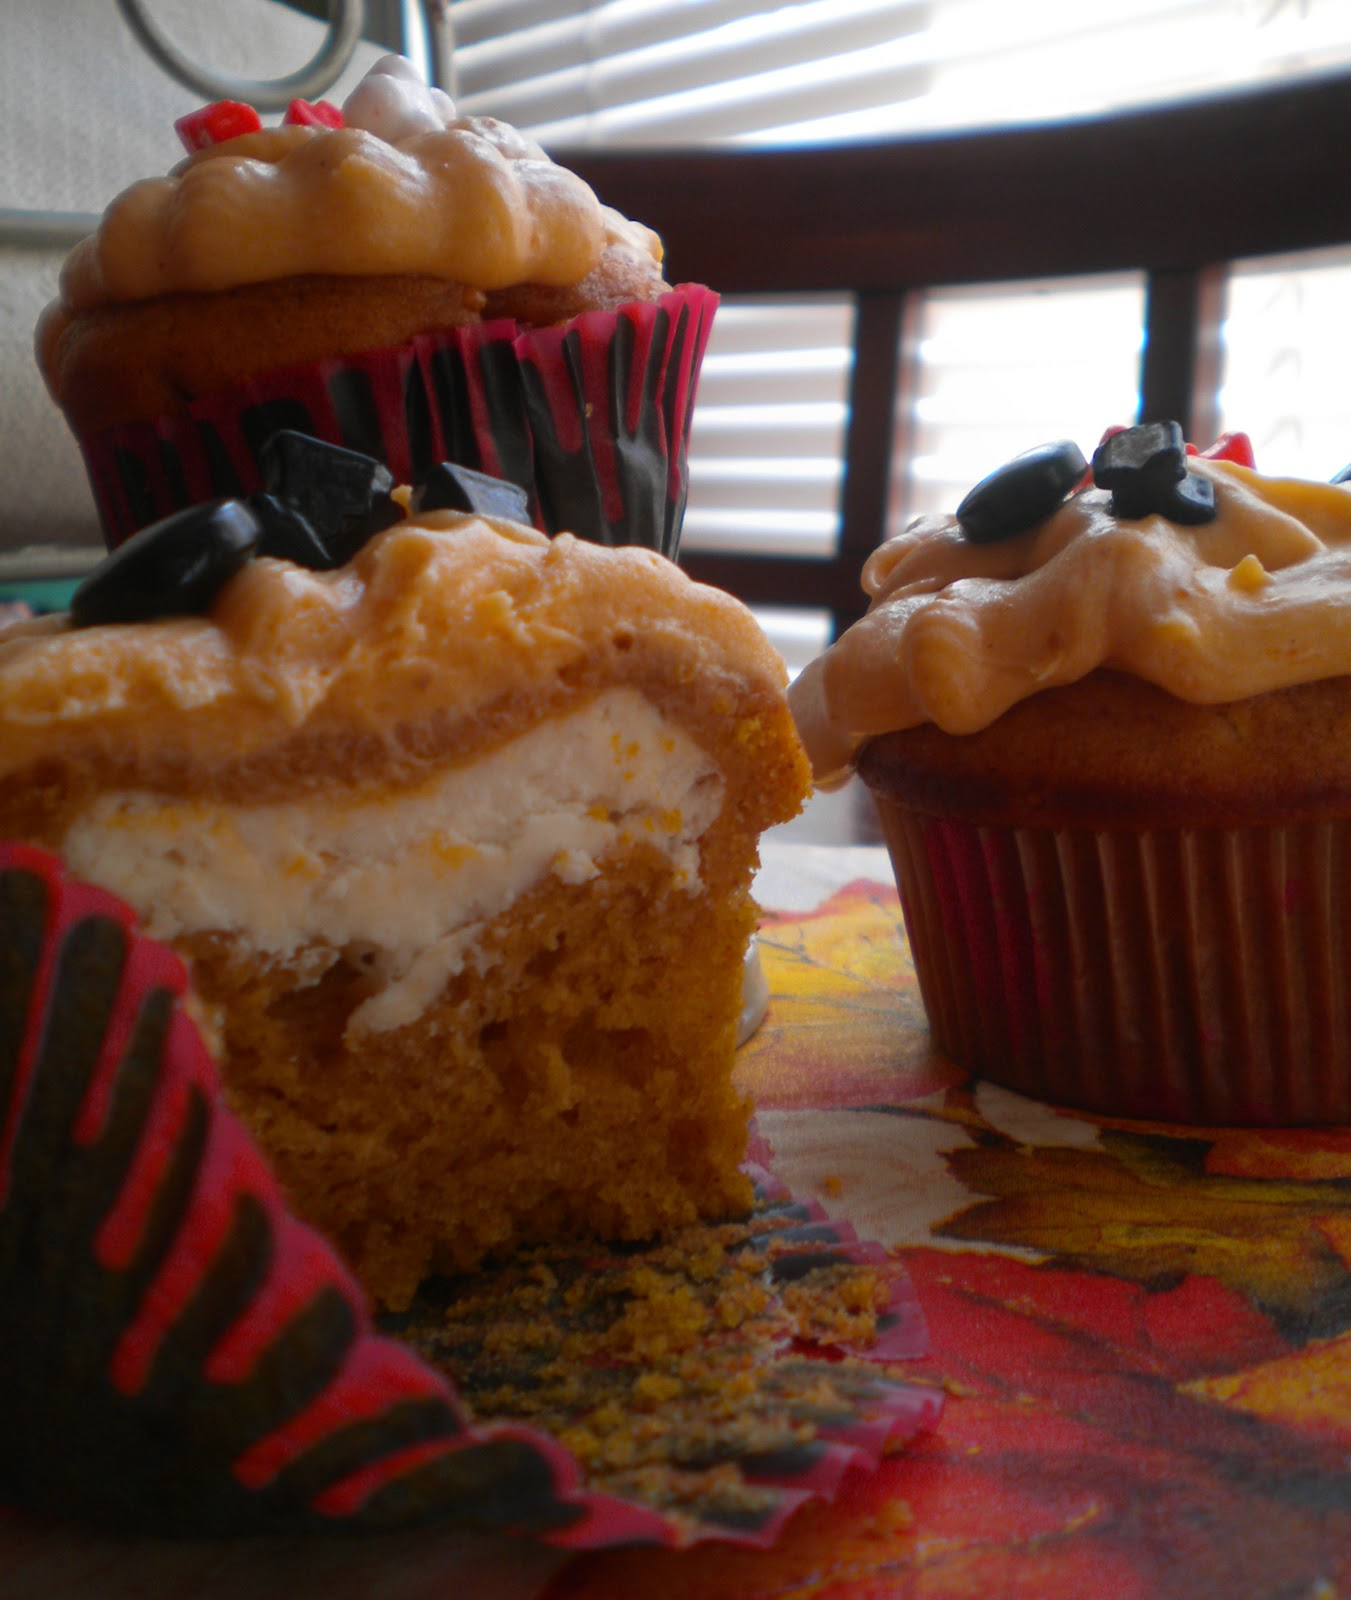 RECIPE: Pumpkin Cupcakes With Cream Cheese Filling And